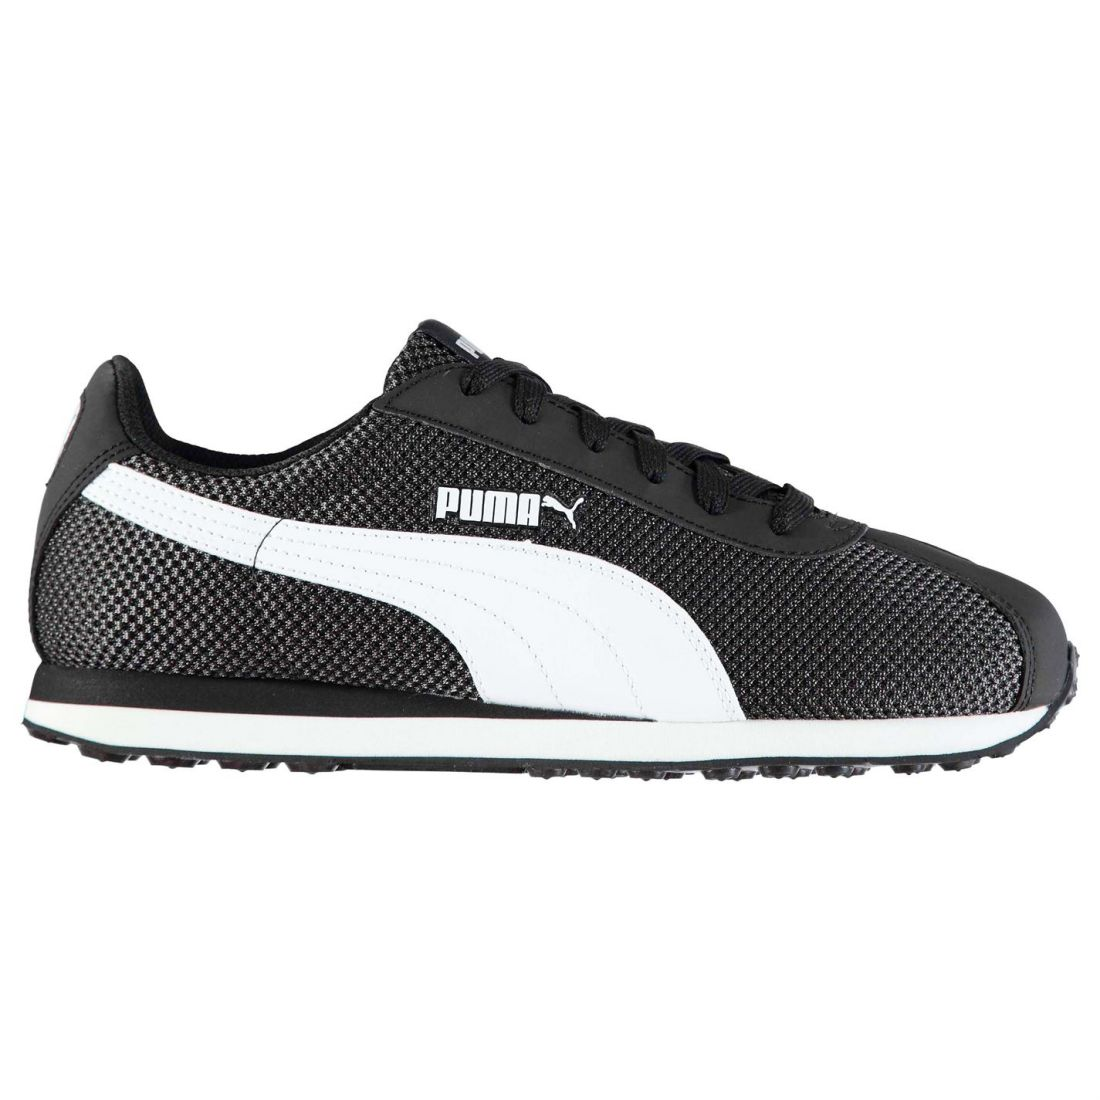 Puma-Mens-Gents-Turin-Mesh-Trainers-Shoes-Laces-Fastened-Footwear thumbnail 3